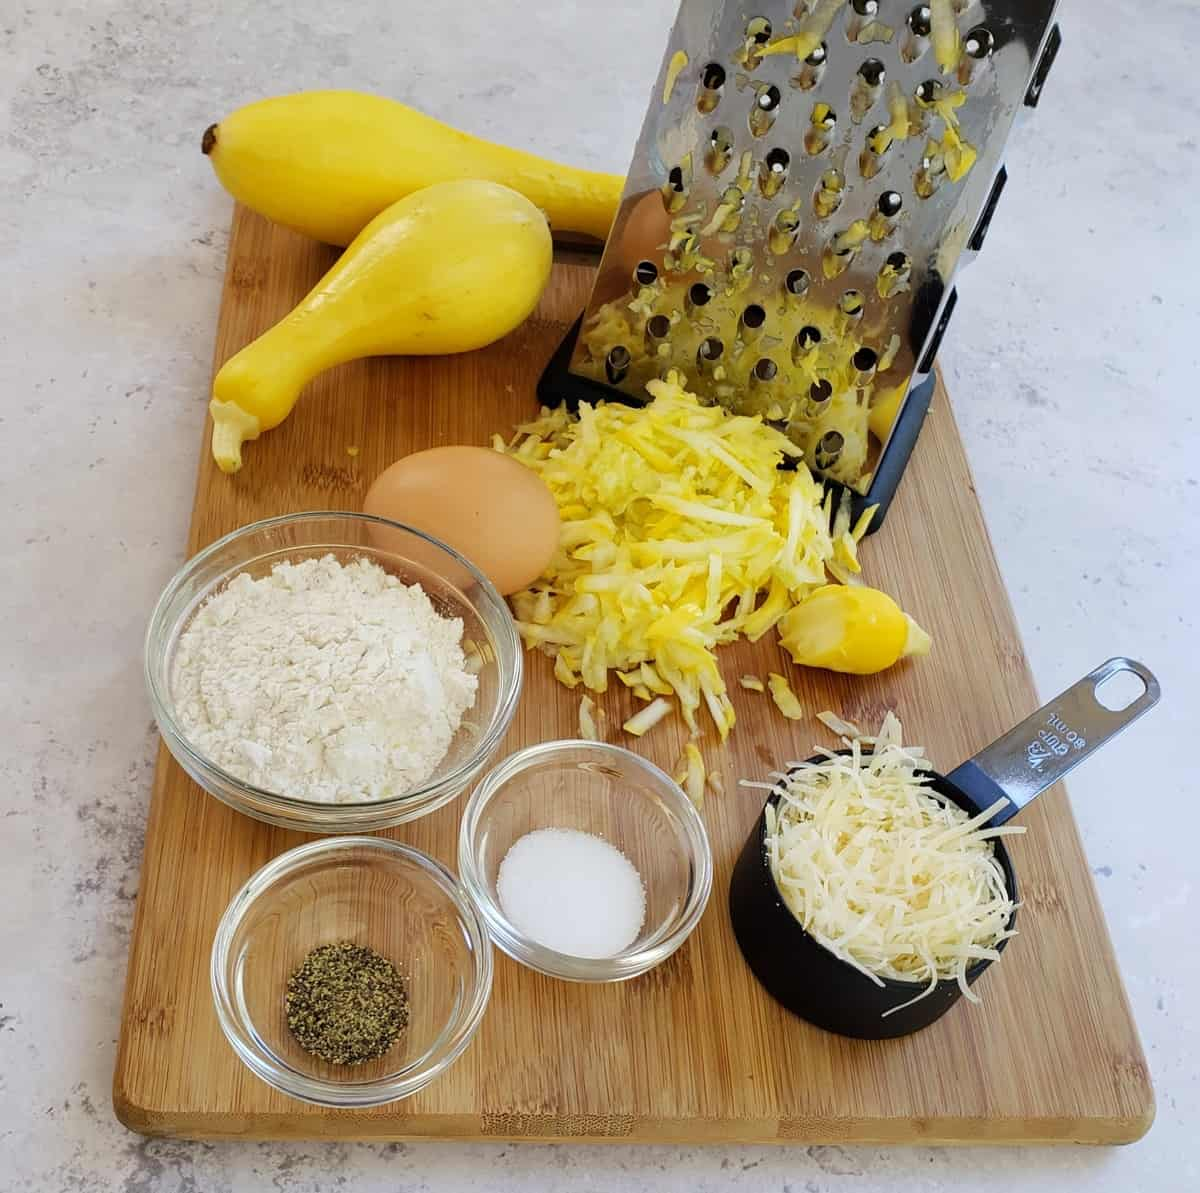 Ingredients on a wooden cutting board: shredded yellow squash, measuring cup of Parmesan cheese, salt, pepper, flour, egg